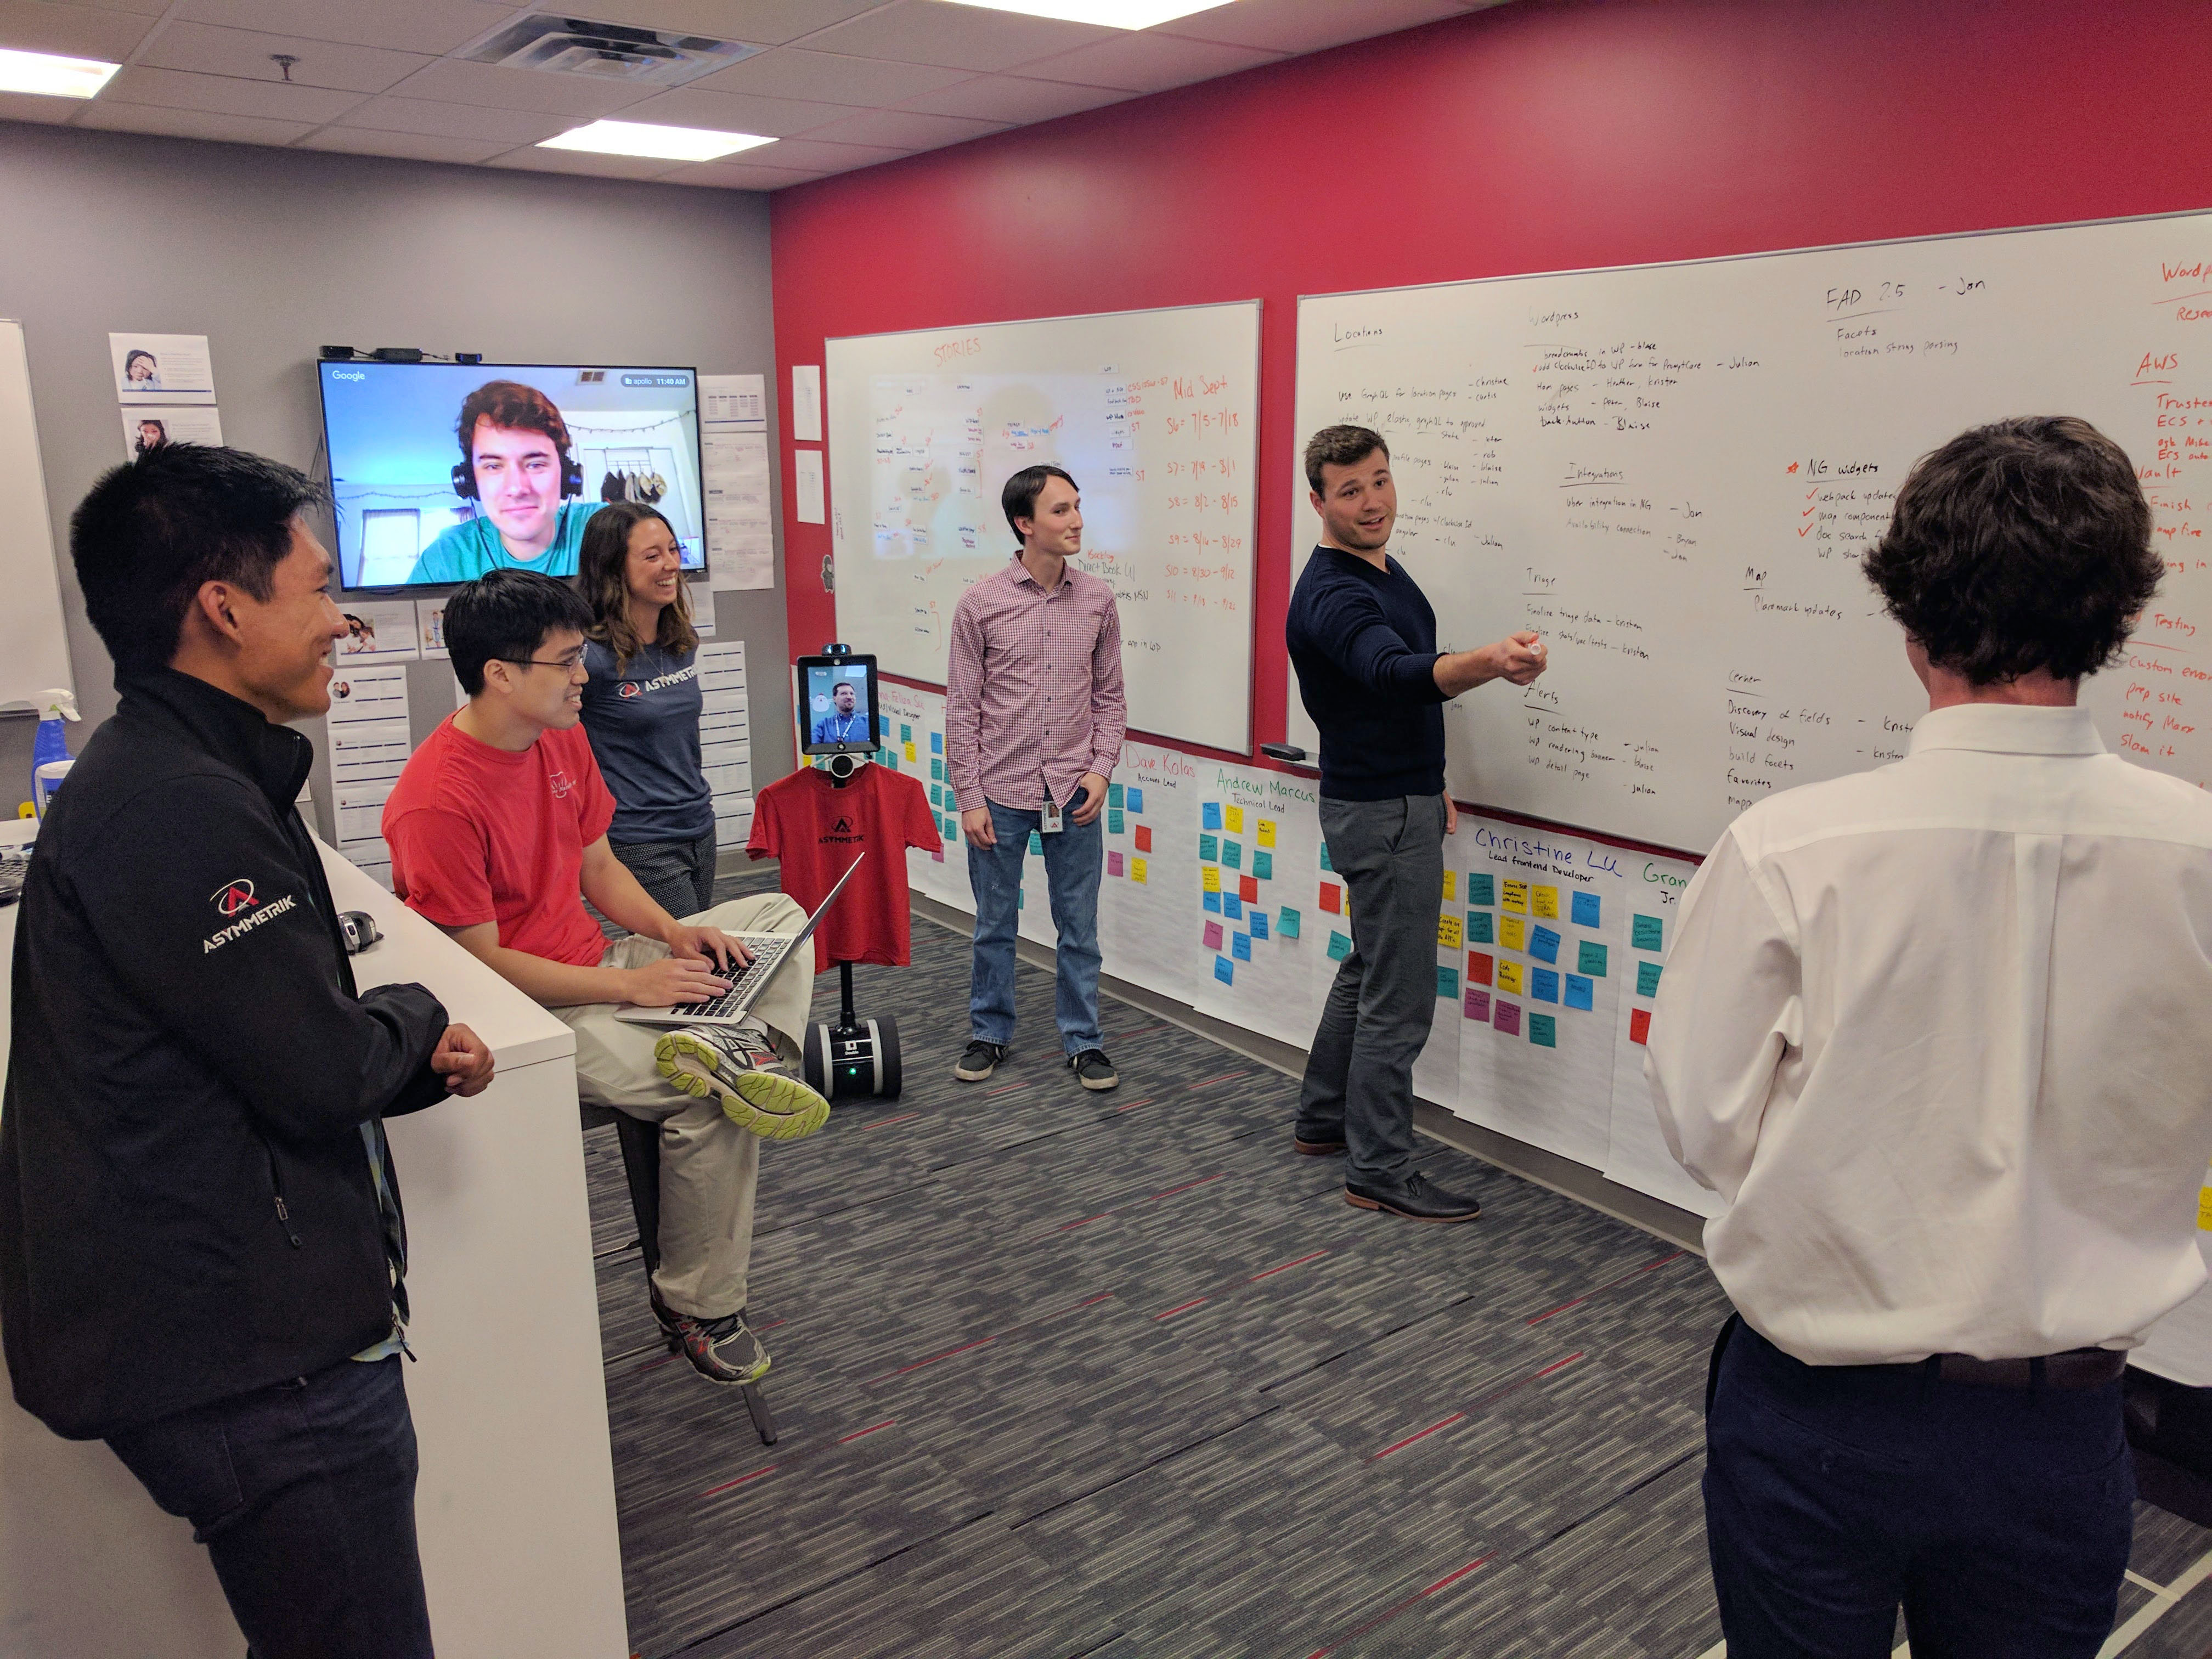 Software engineers working together at whiteboard